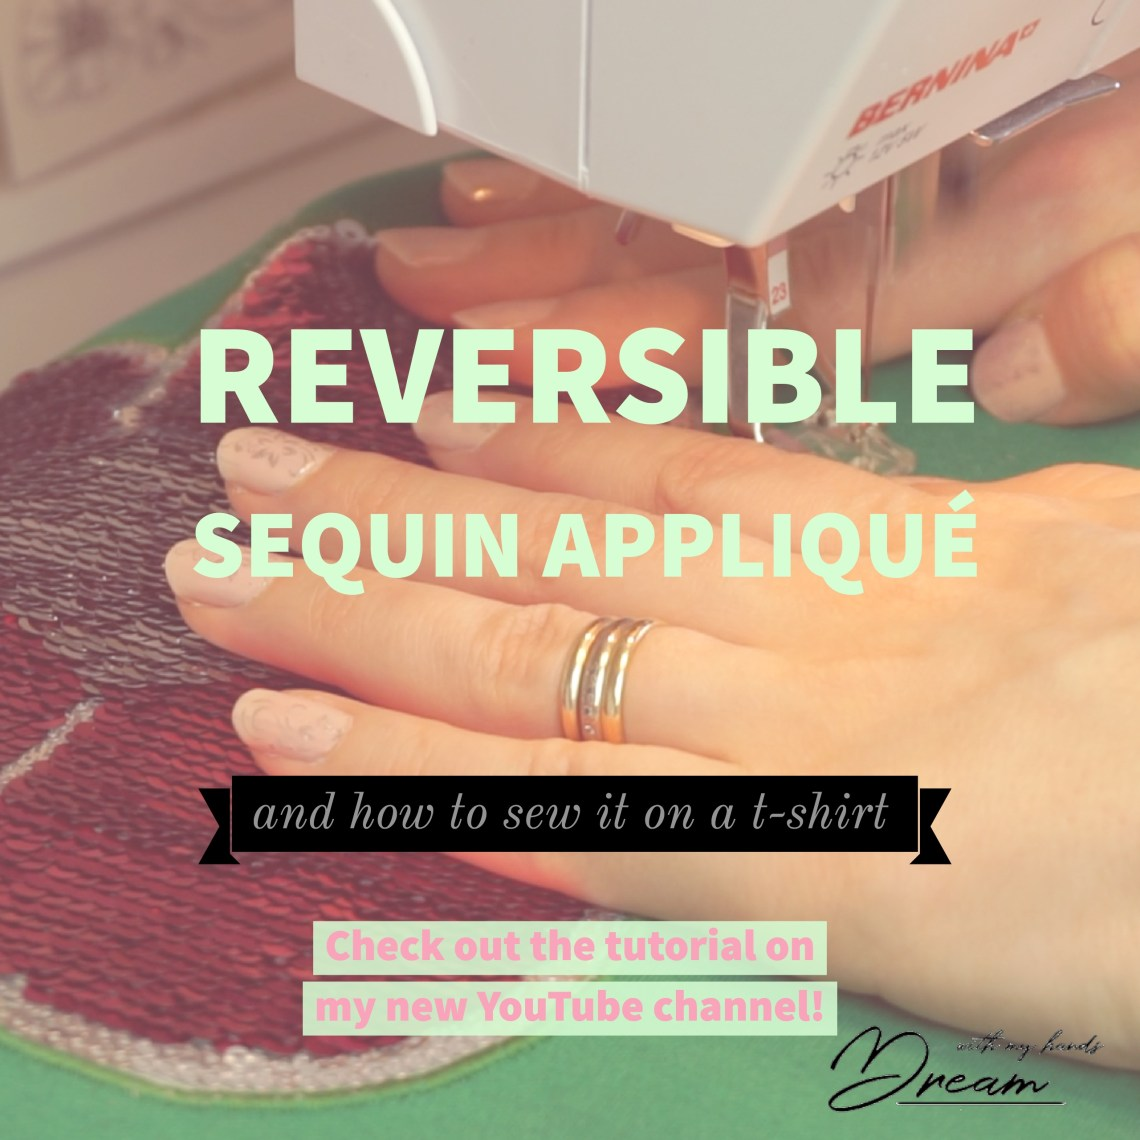 How to sew on a reversible sequin appliqué